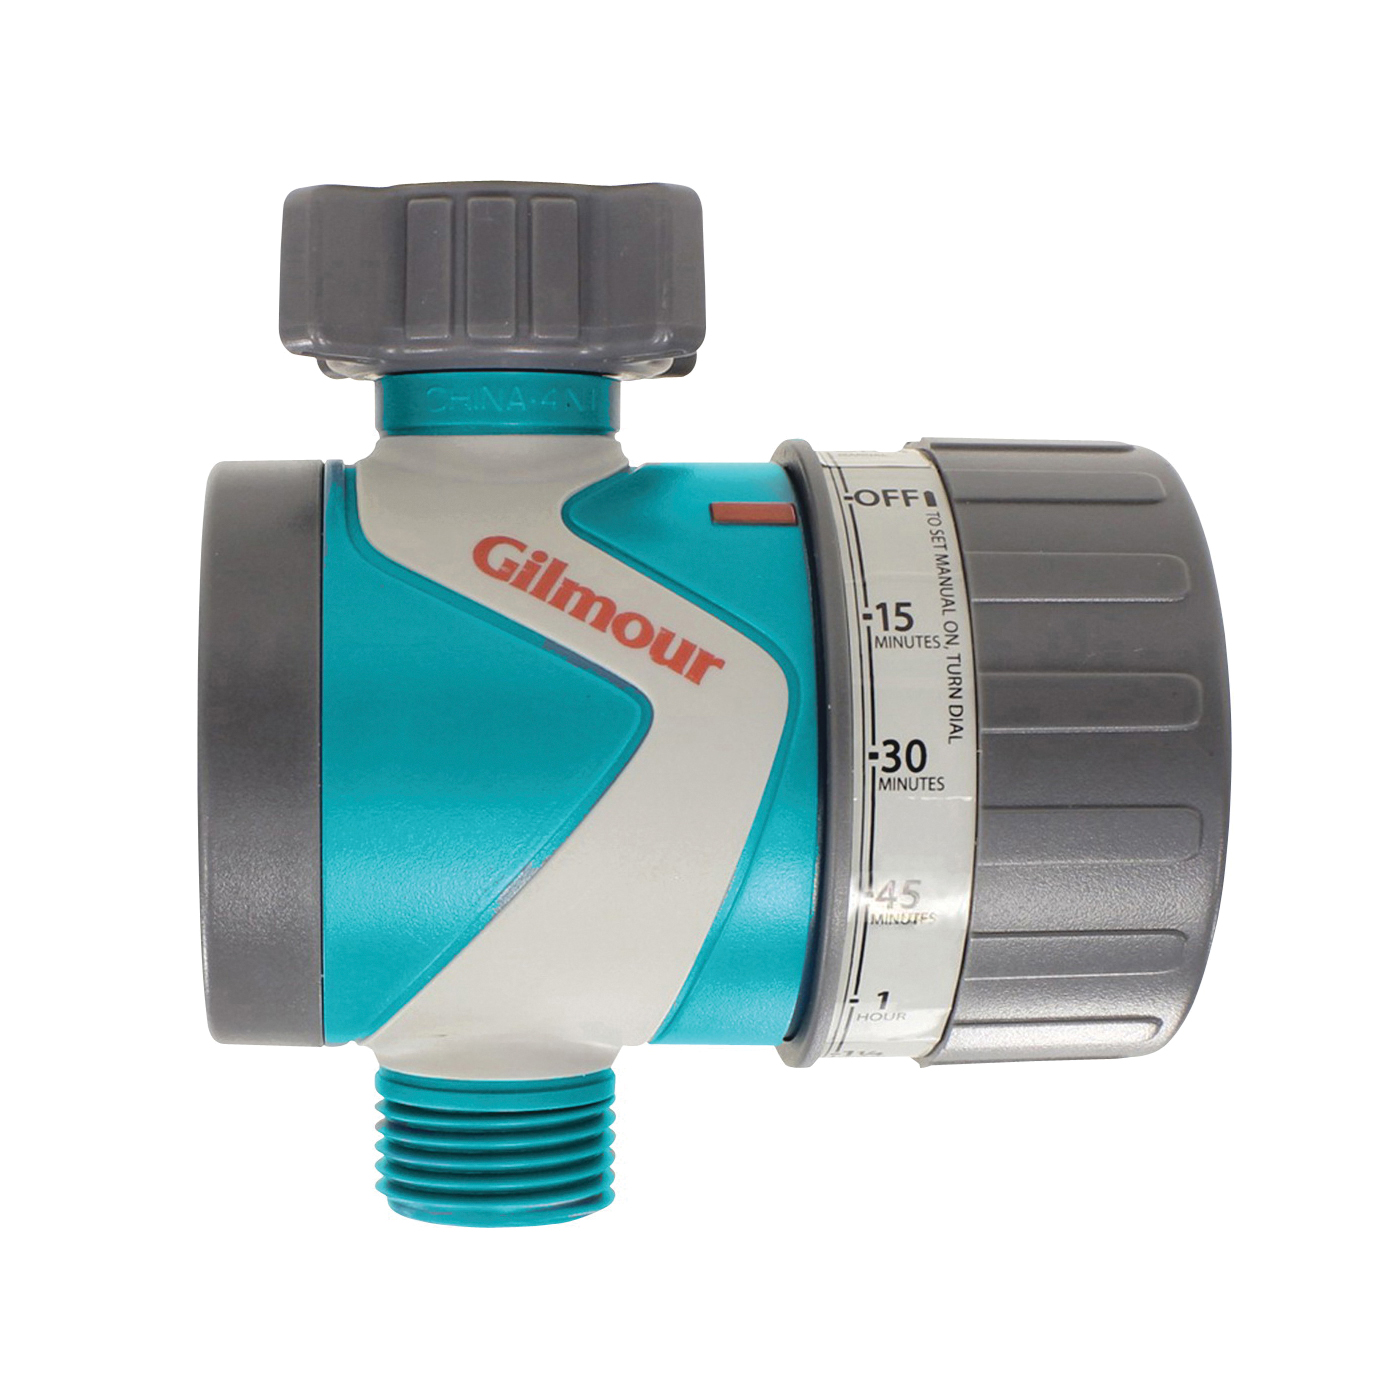 Picture of Gilmour 820054-1001 Mechanical Water Timer, 1 to 120 min, 15 to 120 psi Pressure